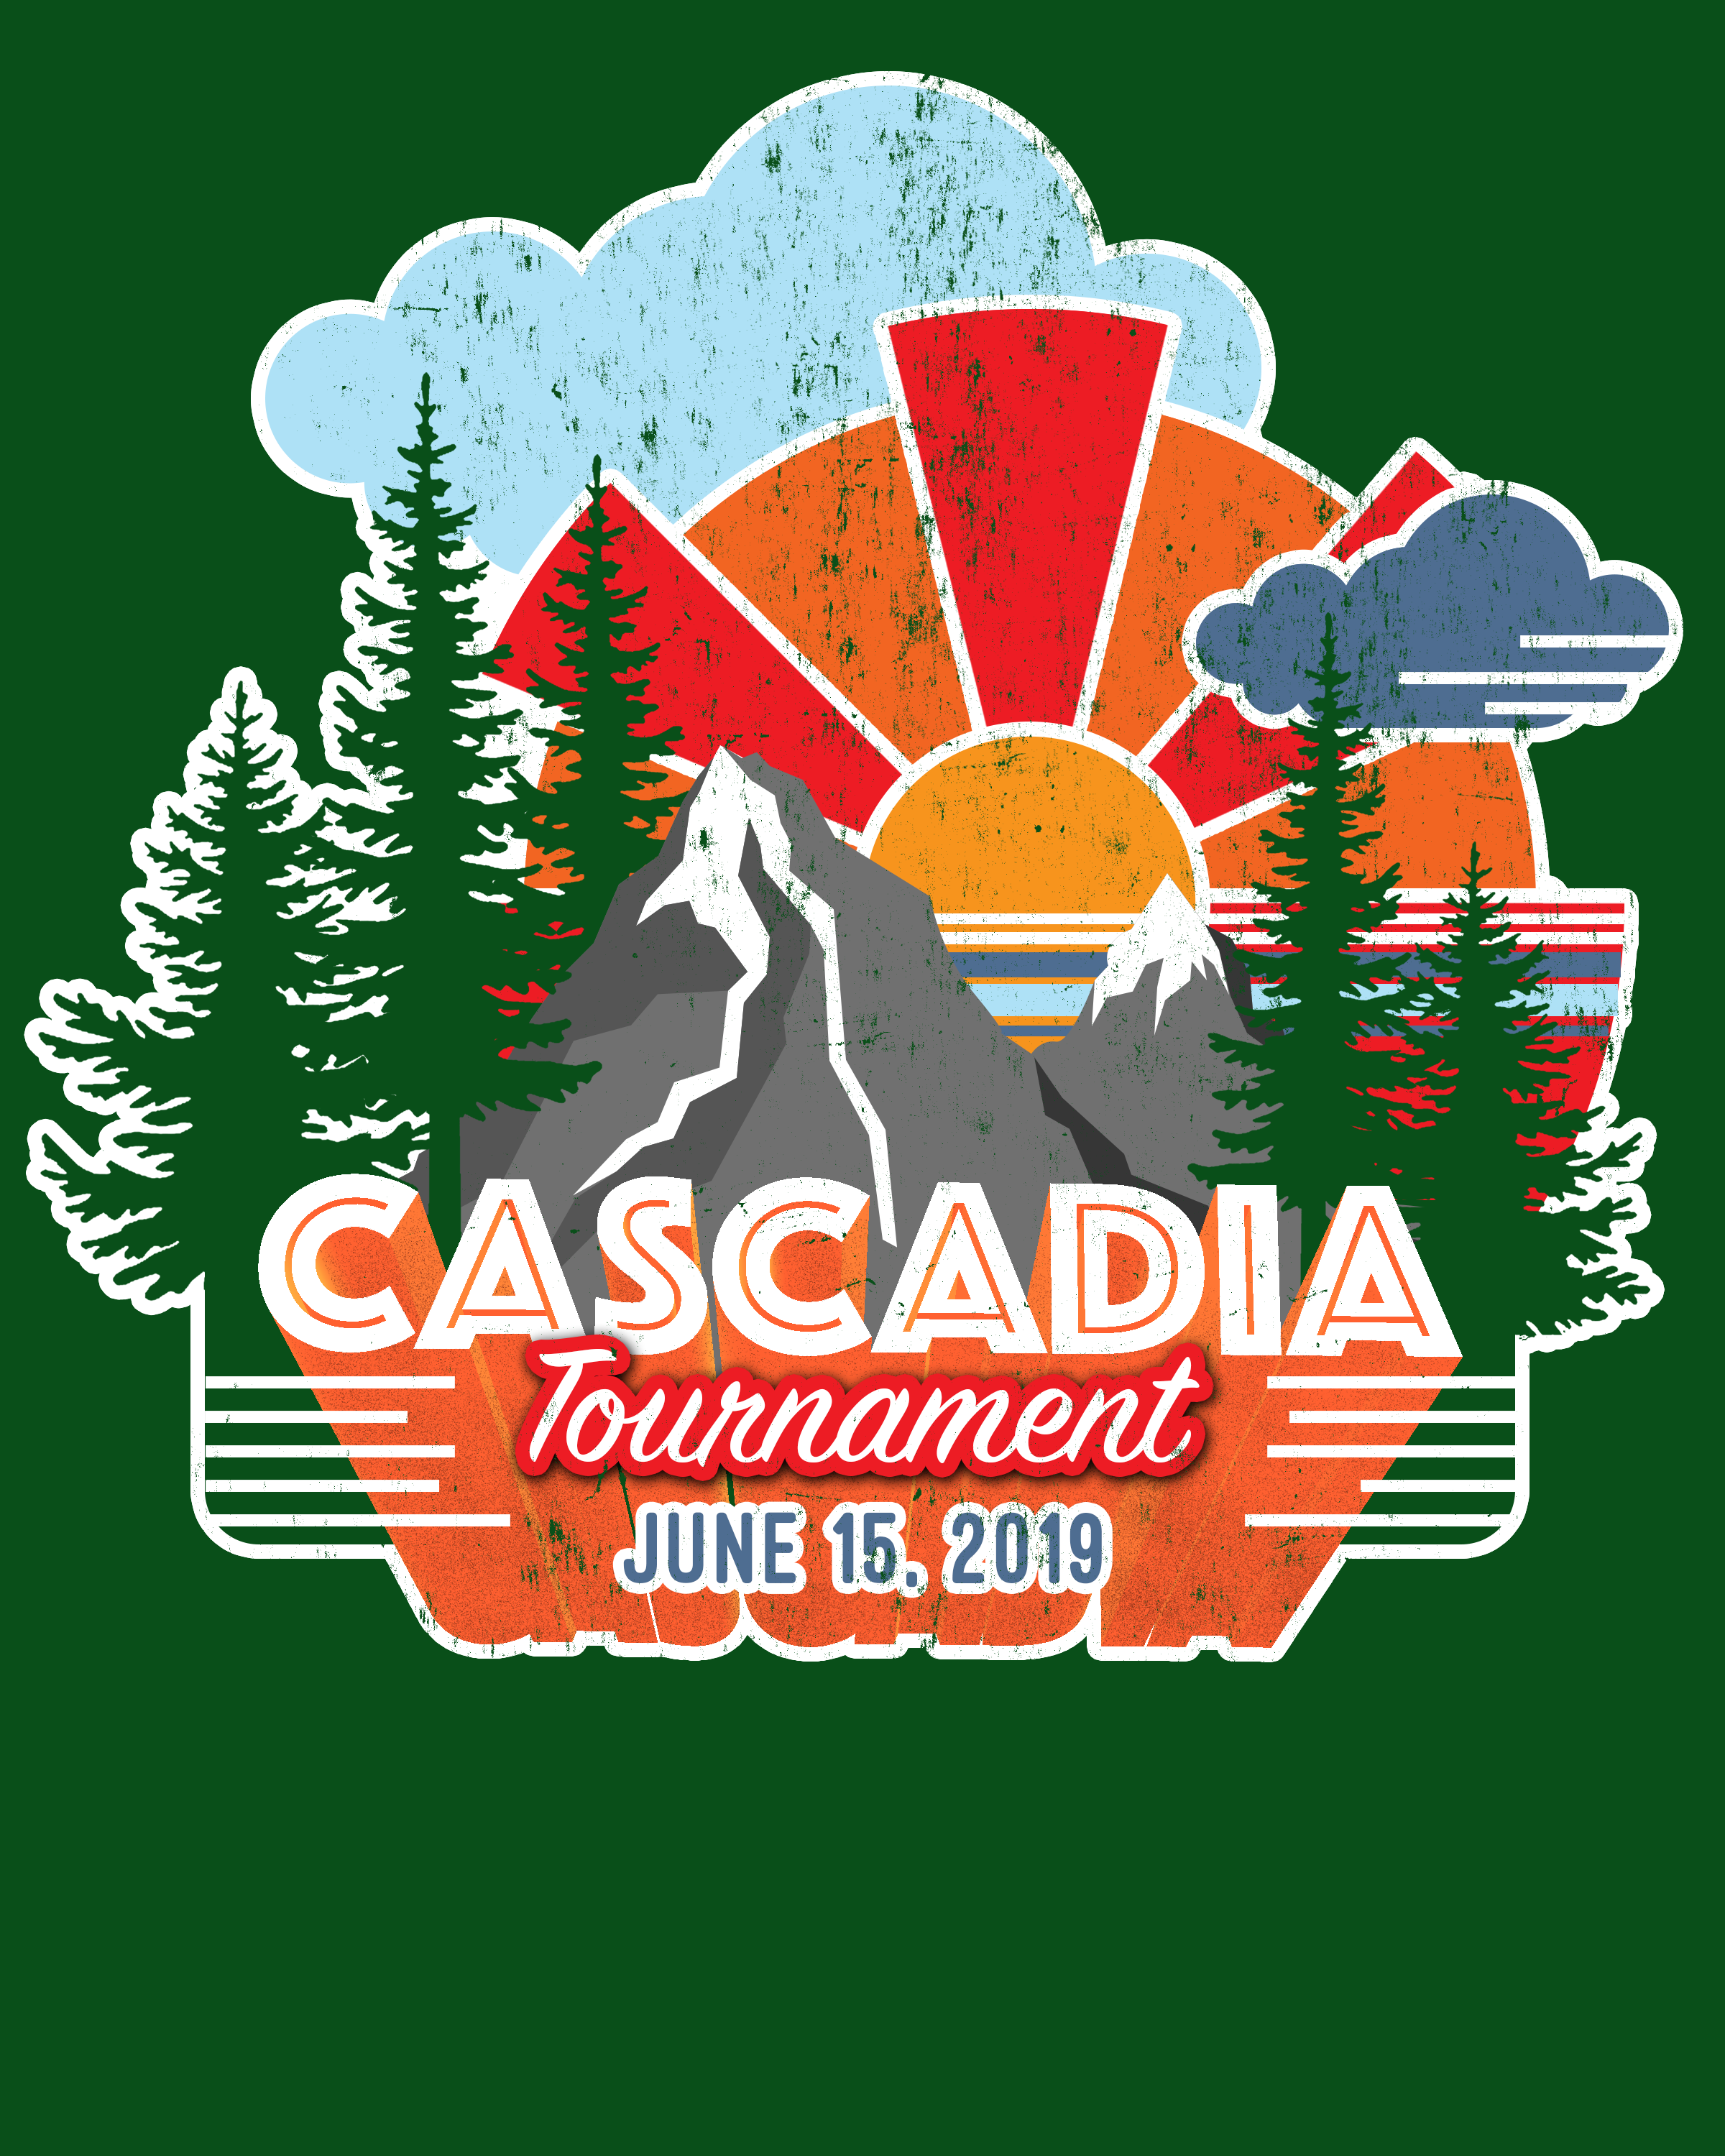 The Seattle Grizzlies host their inaugural Cascadia Tournament this year on June 15th, welcoming in clubs from around the region, coming in from Oregon, California, Arizona and British Columbia.  The tournament will run from 9AM-6PM at  Vassault Park in Tacoma, WA . All are welcome to attend